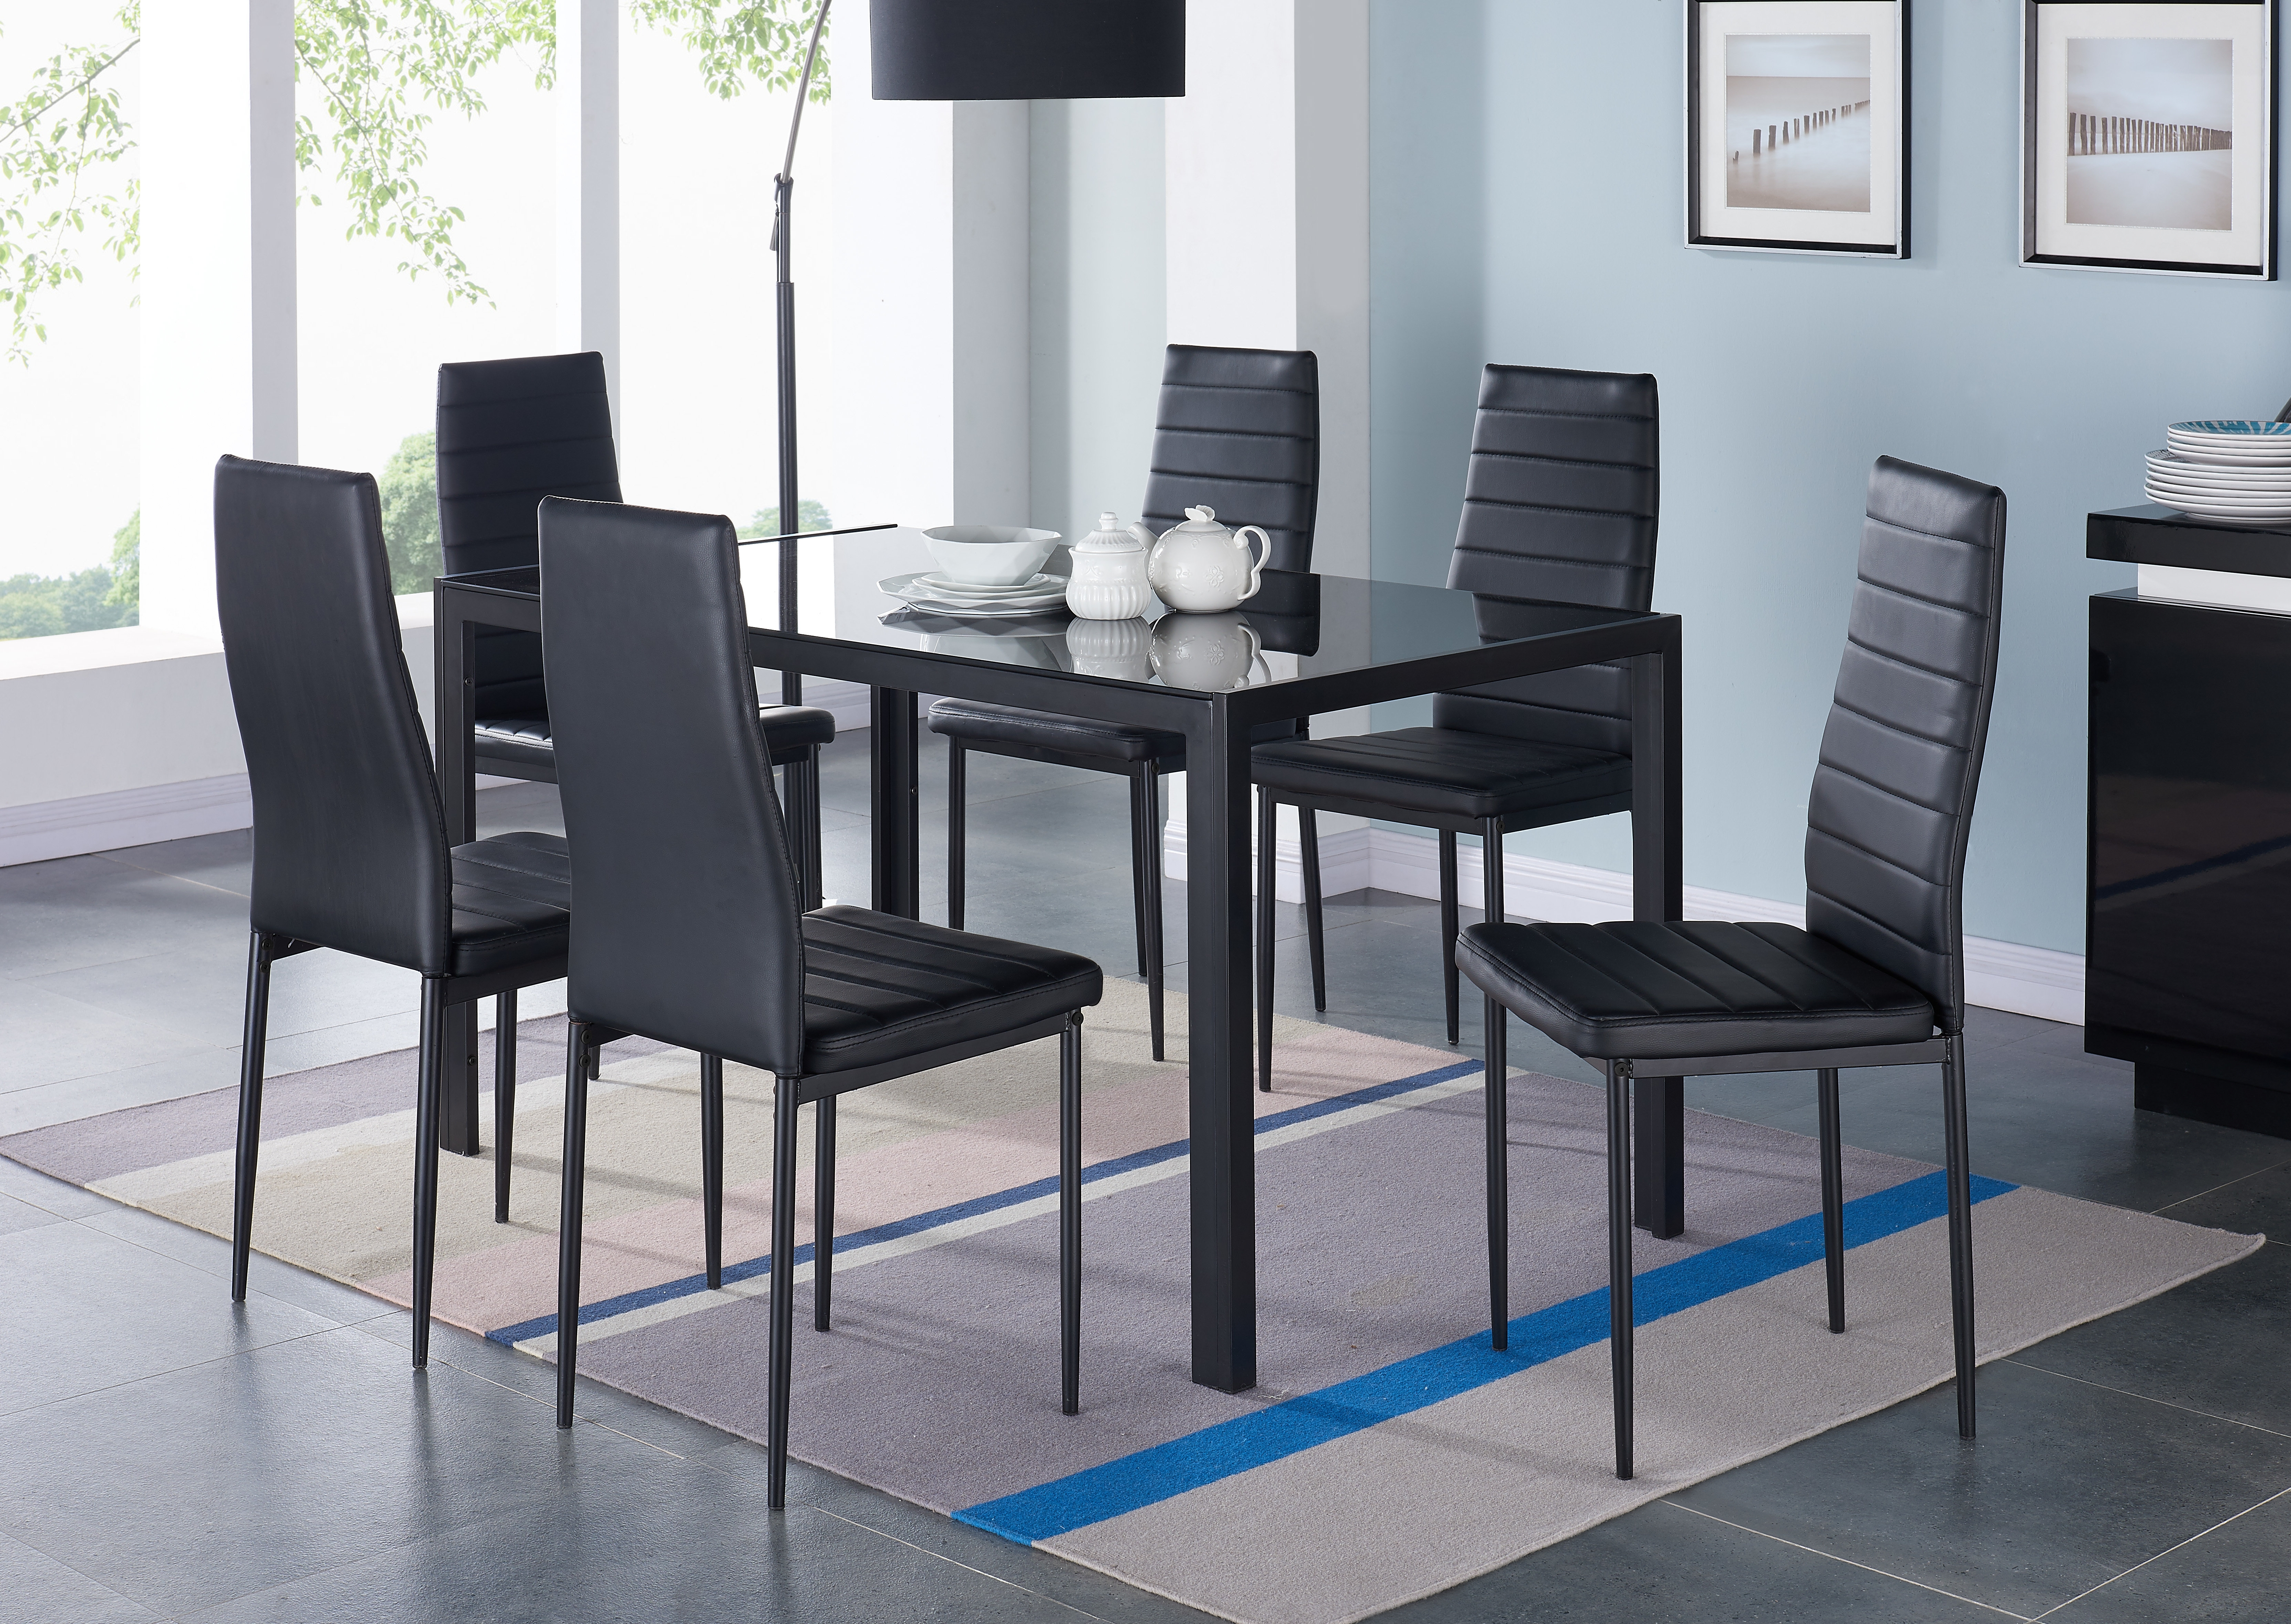 Orren Ellis Umber Glass Dining Table Set With 6 Chairs (View 15 of 25)